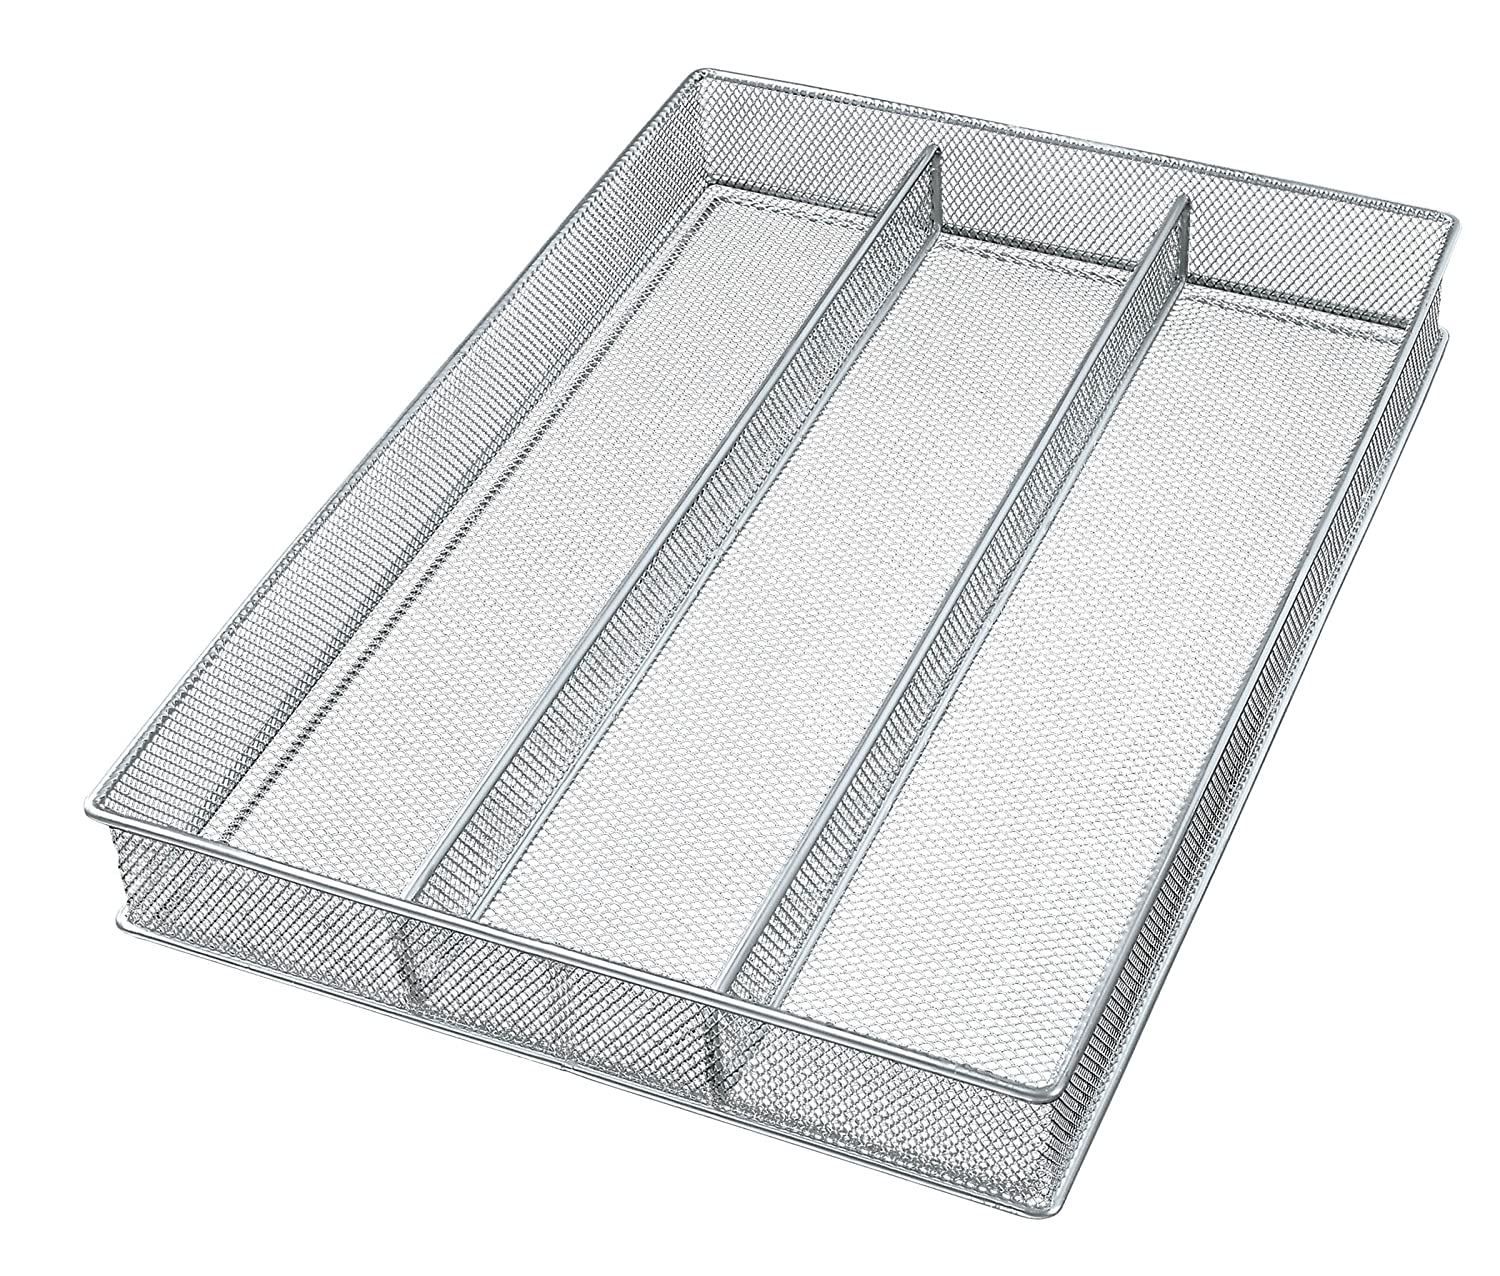 Large Mesh 3-Part In-Drawer Utensil Organizer